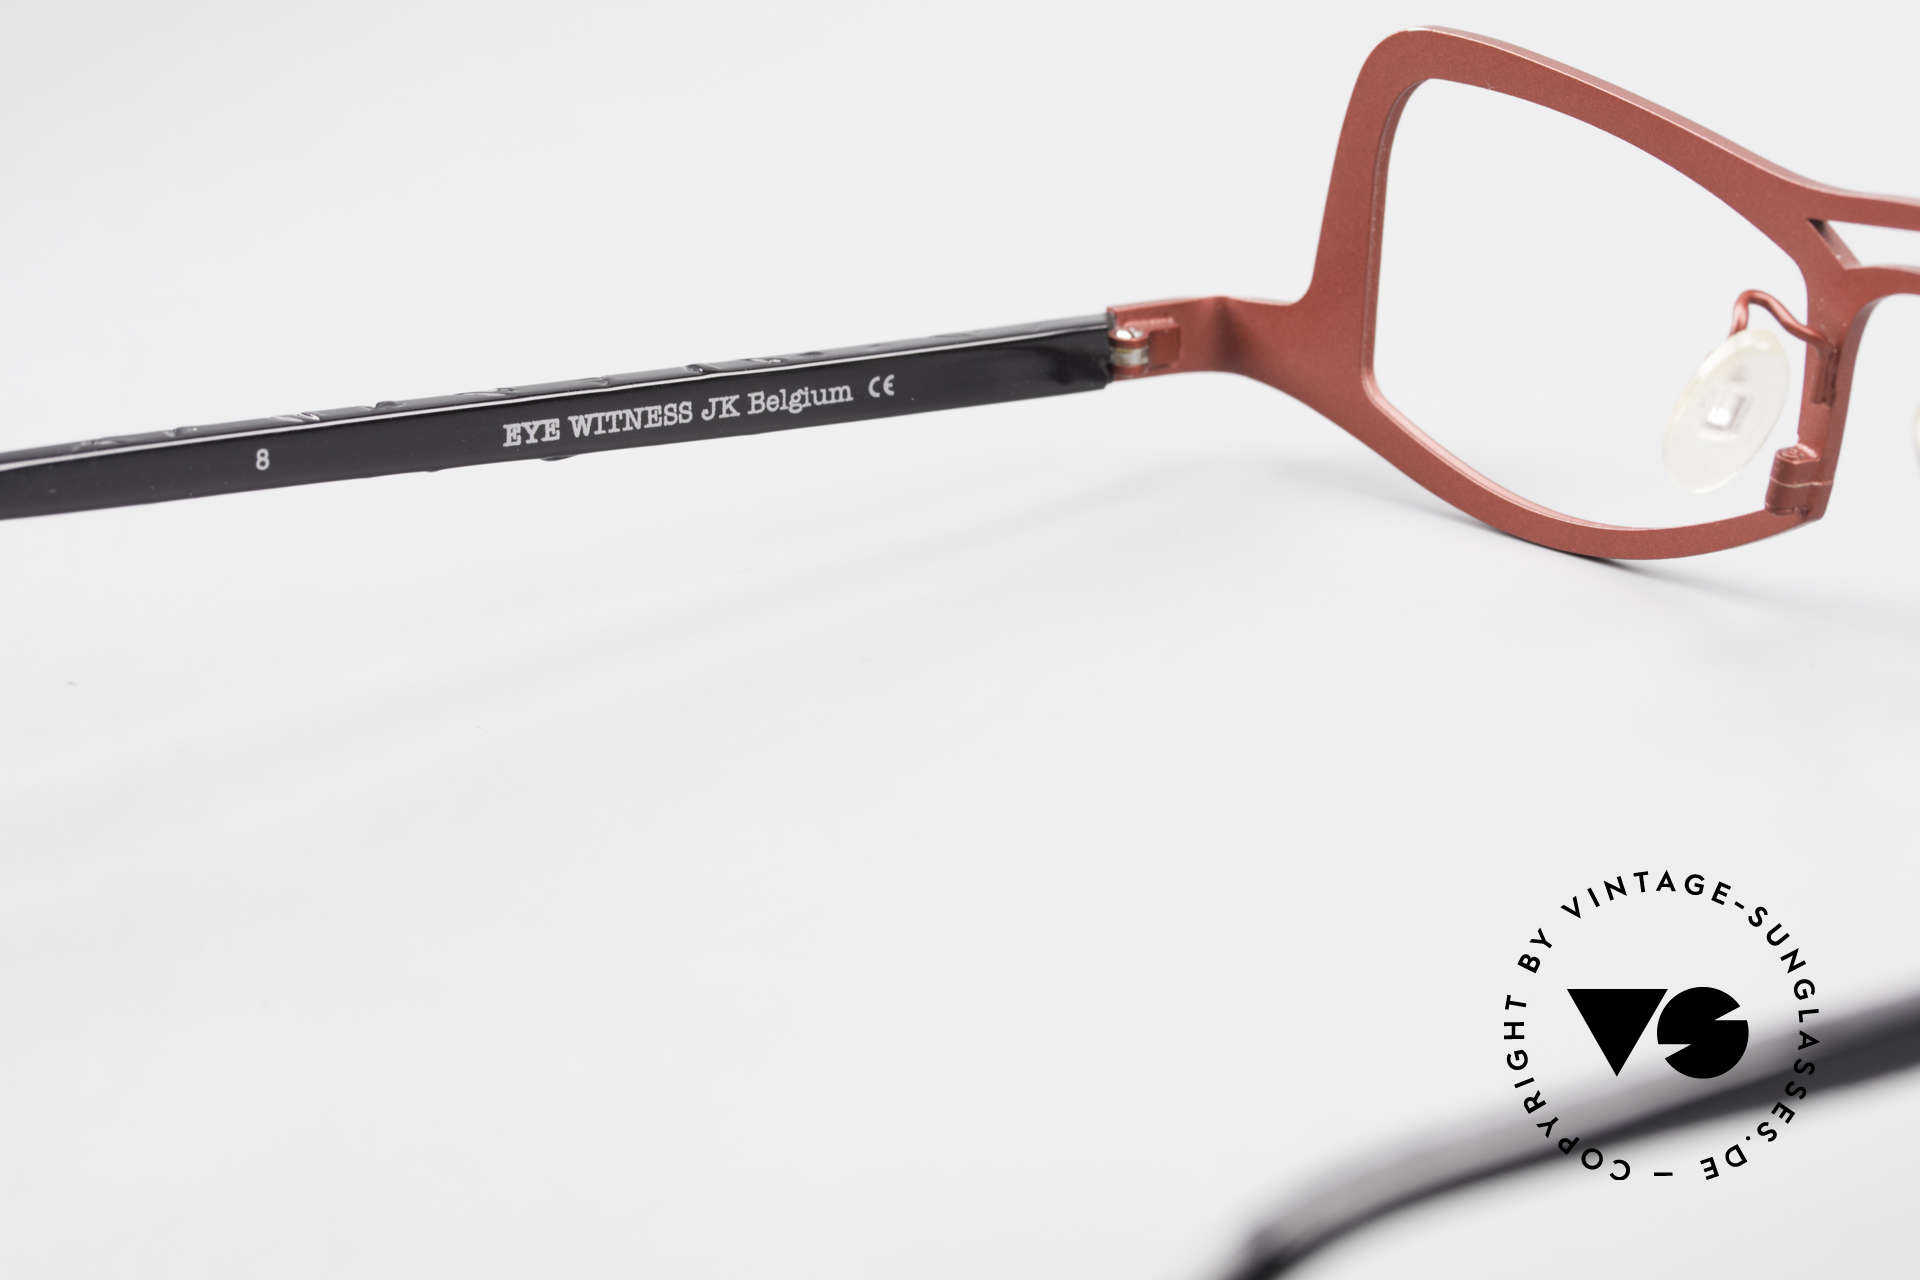 Theo Belgium Eye-Witness JK Pure Titanium Ladies Glasses, the frame can be glazed with optical lenses or sun lenses, Made for Women